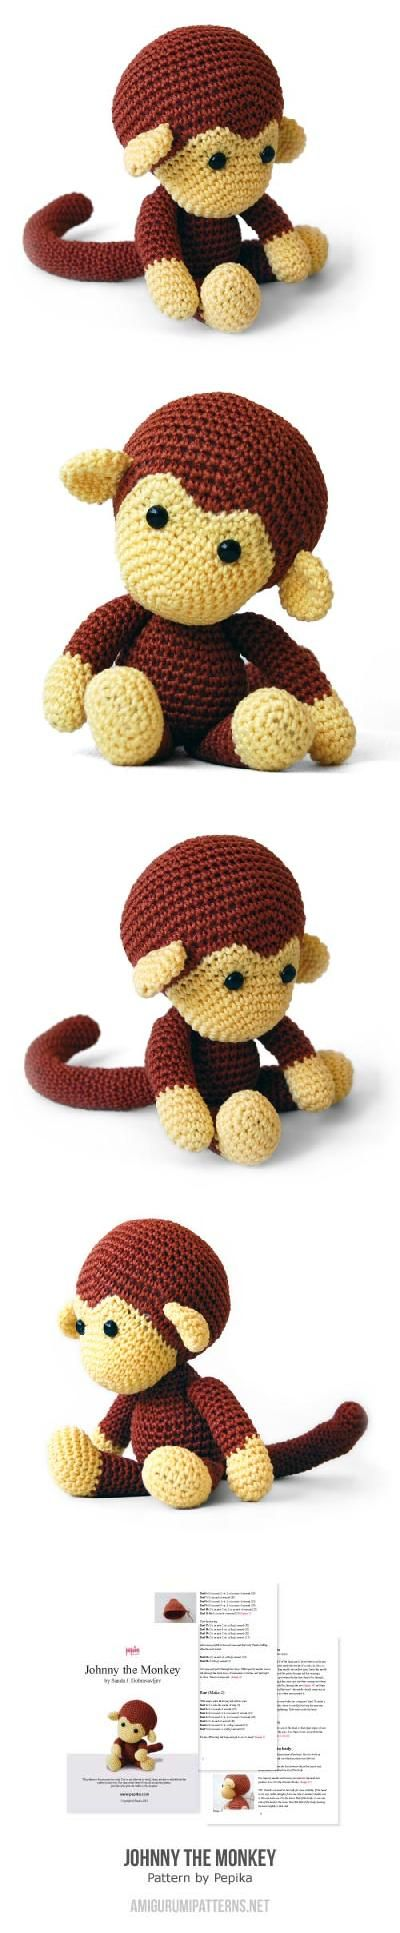 I grew up collecting lots of 'monkey' items since they are my favourite animal.